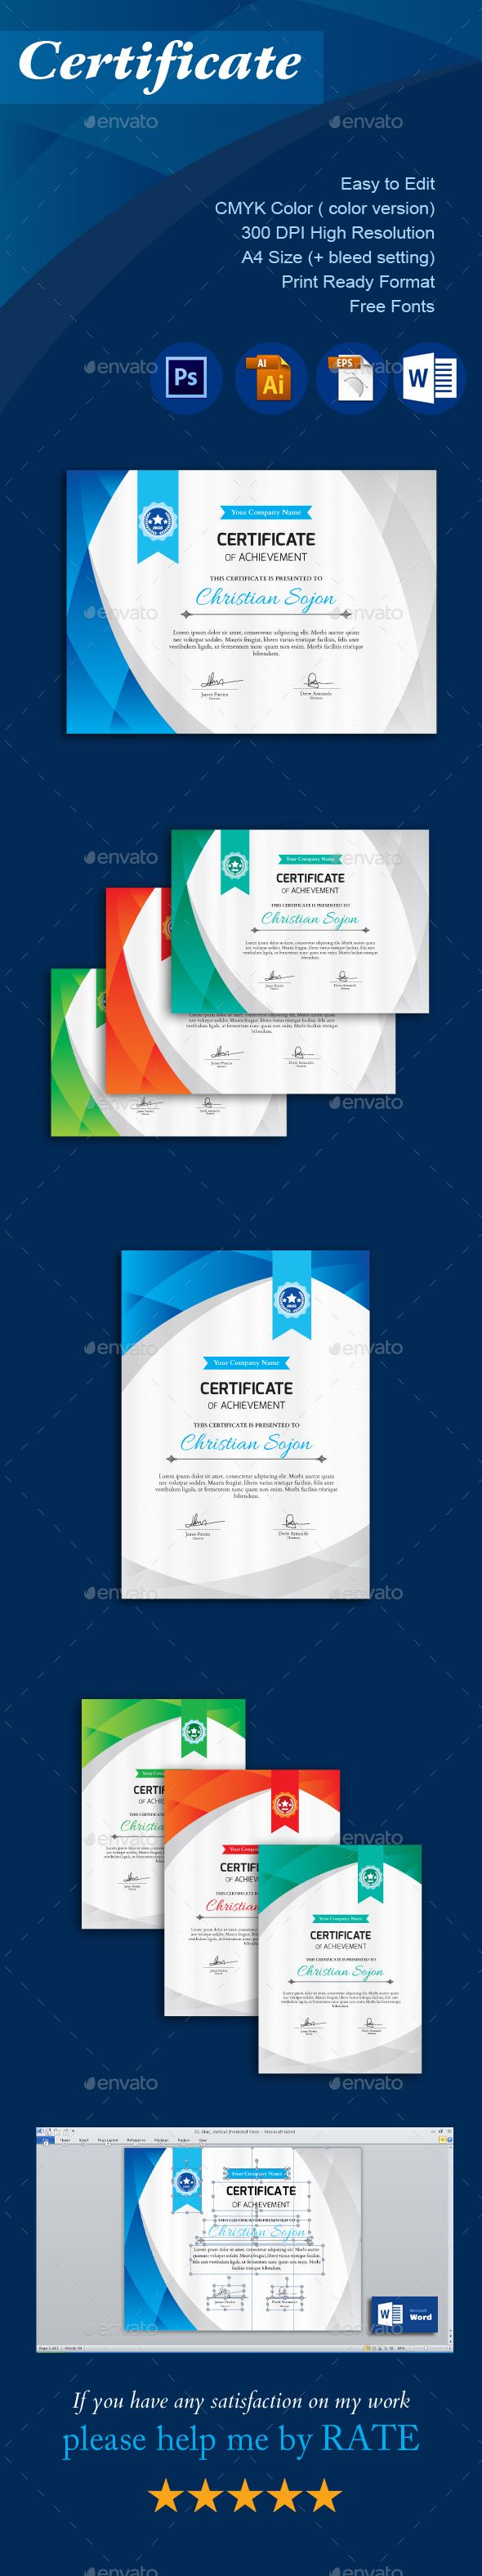 #Certificate - Certificates #Stationery Download here: https://graphicriver.net/item/certificate/18419688?ref=alena994